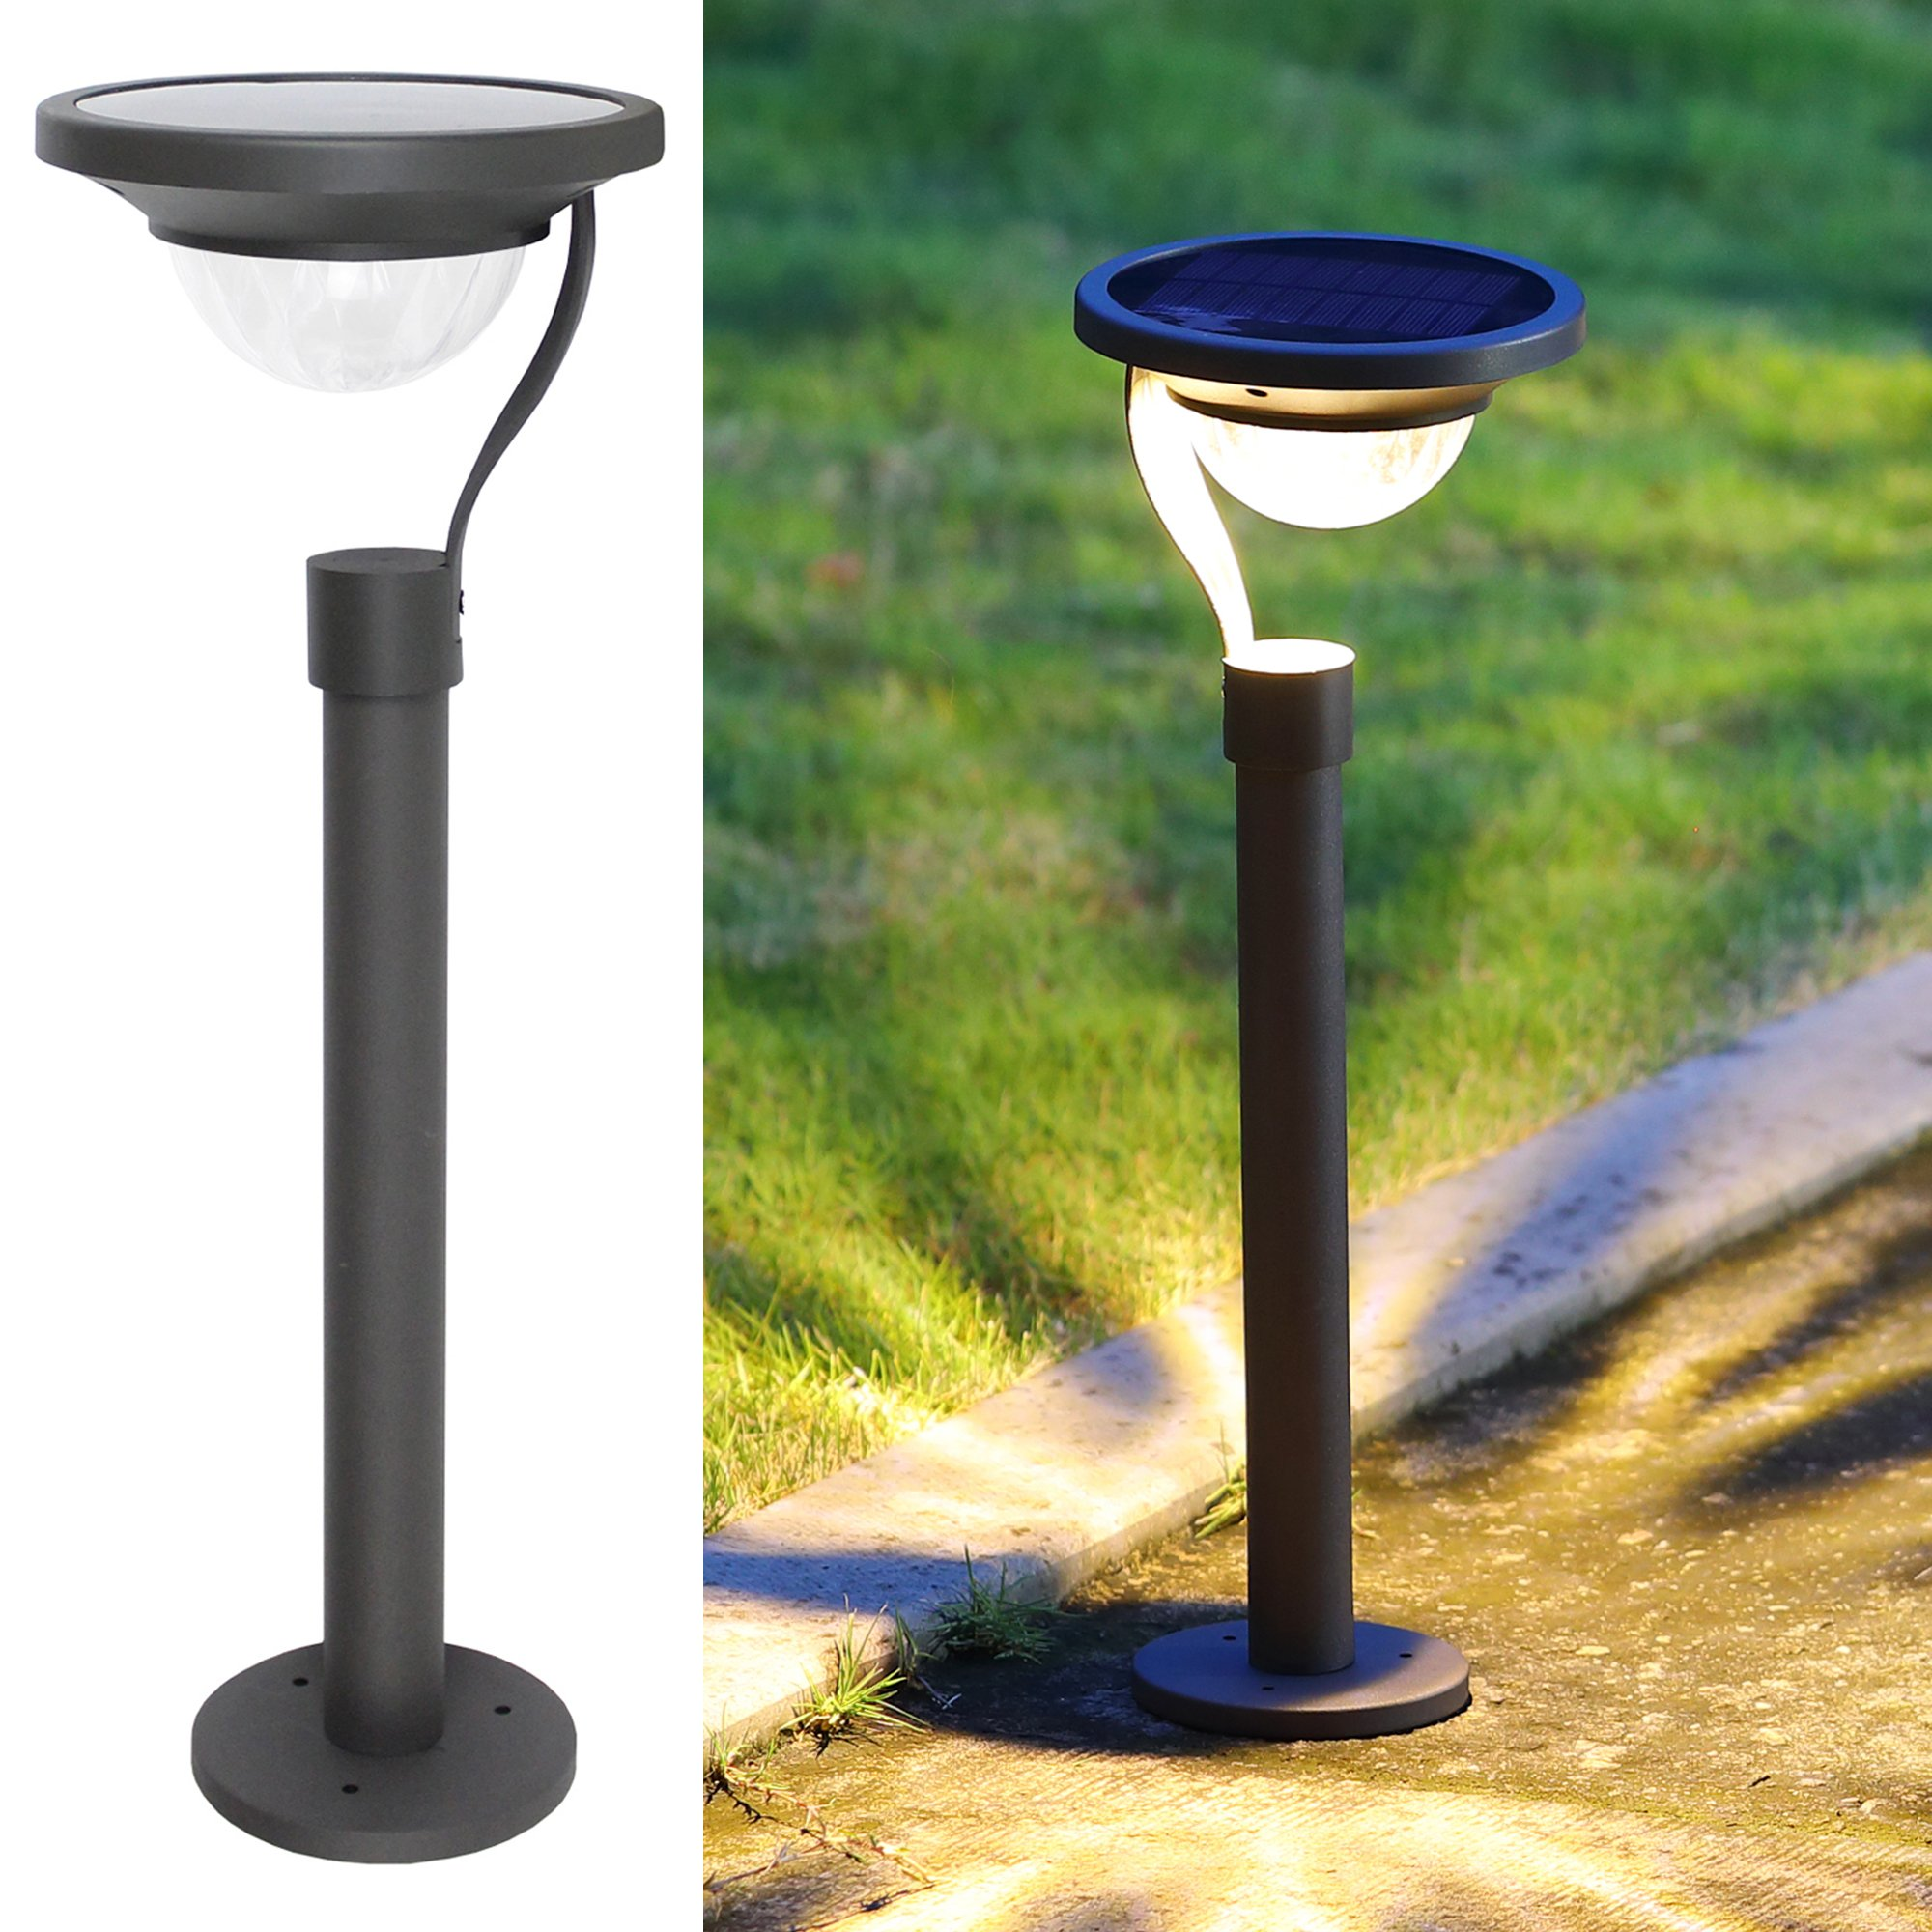 twinkle star 50 lumens solar path lights garden landscape outdoor for lawn patio yard driveway can